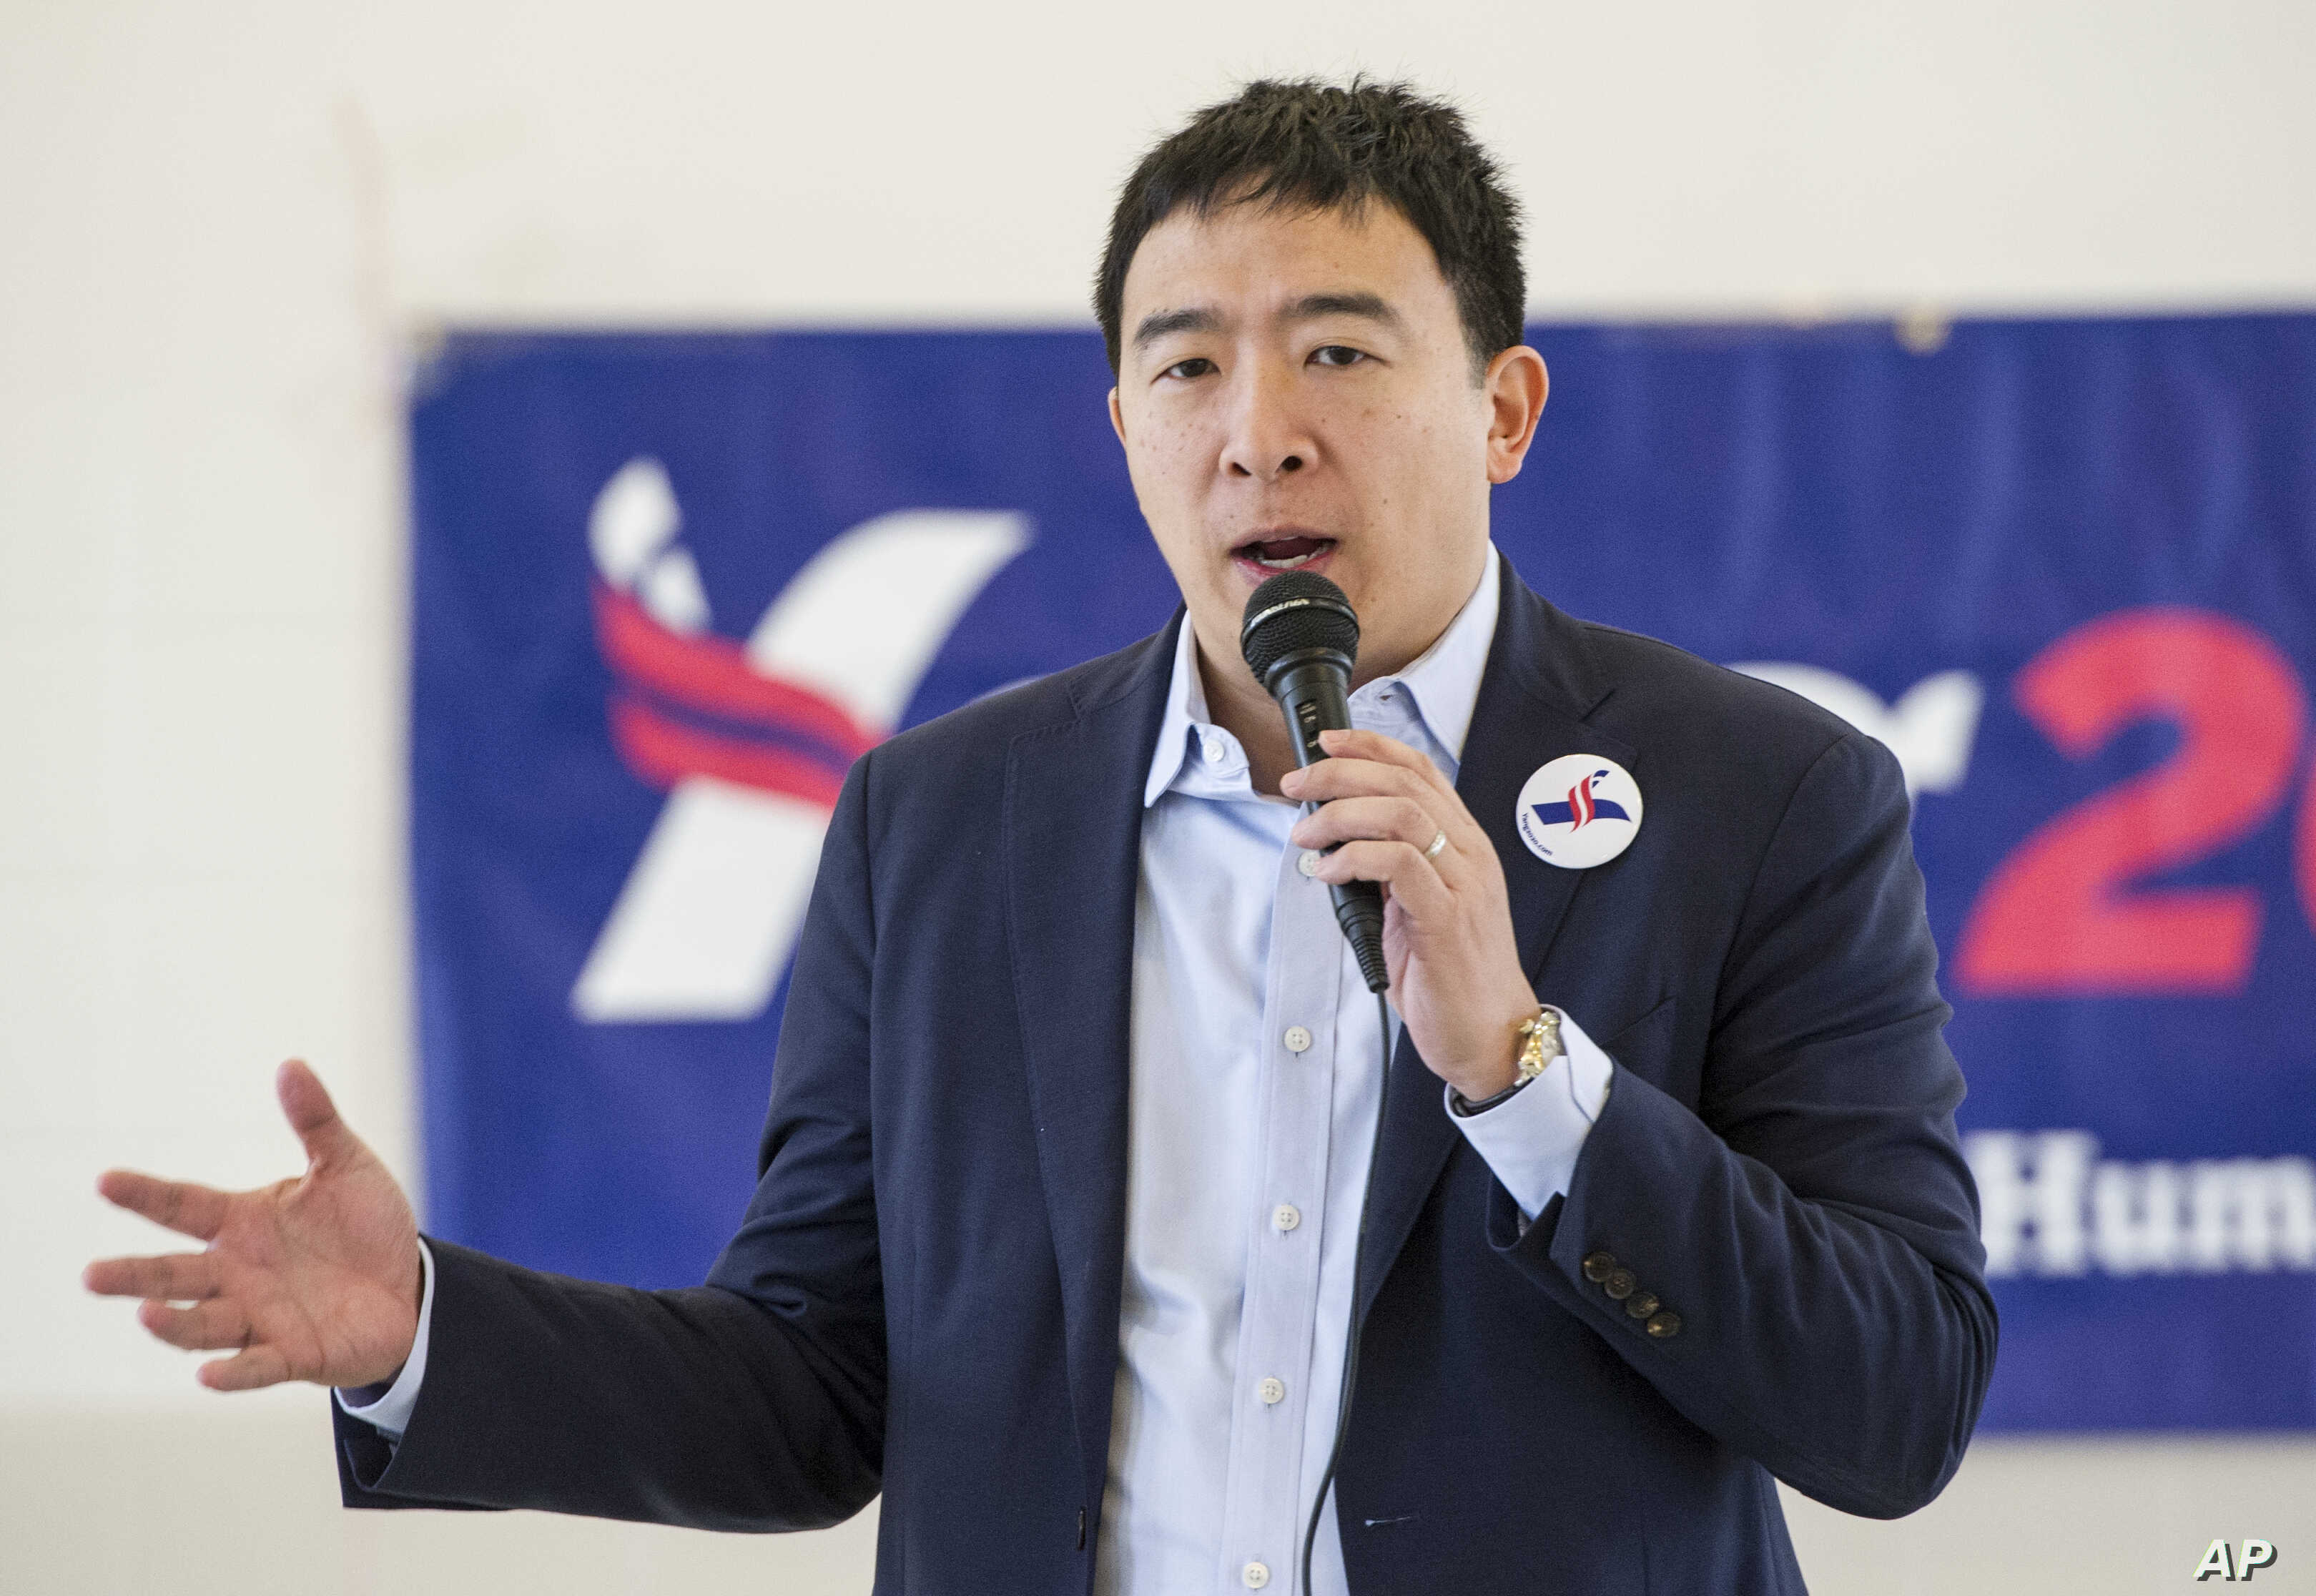 FILE - Andrew Yang, a candidate in the Democratic primaries for president, speaks at a town hall meeting in Cleveland, Feb. 24, 2019.